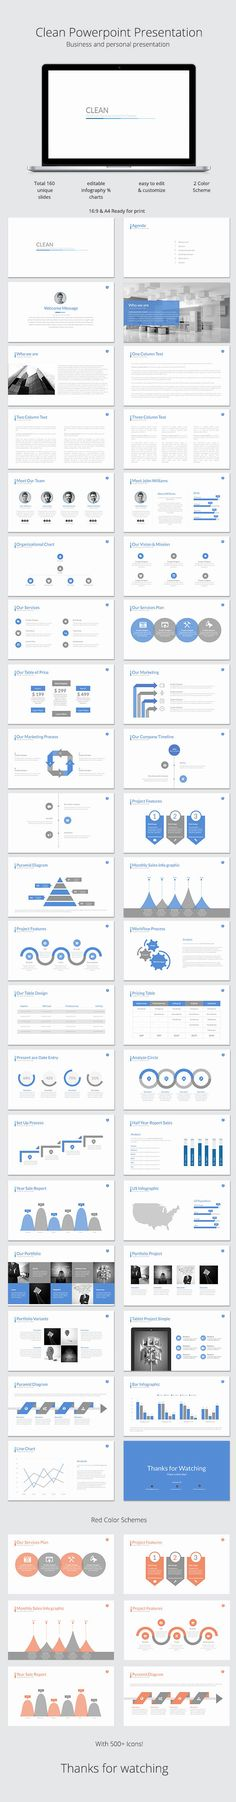 Clean Powerpoint Presentation Template #design #slides Download: http://graphicriver.net/item/clean-powerpoint-template/14314868?ref=ksioks